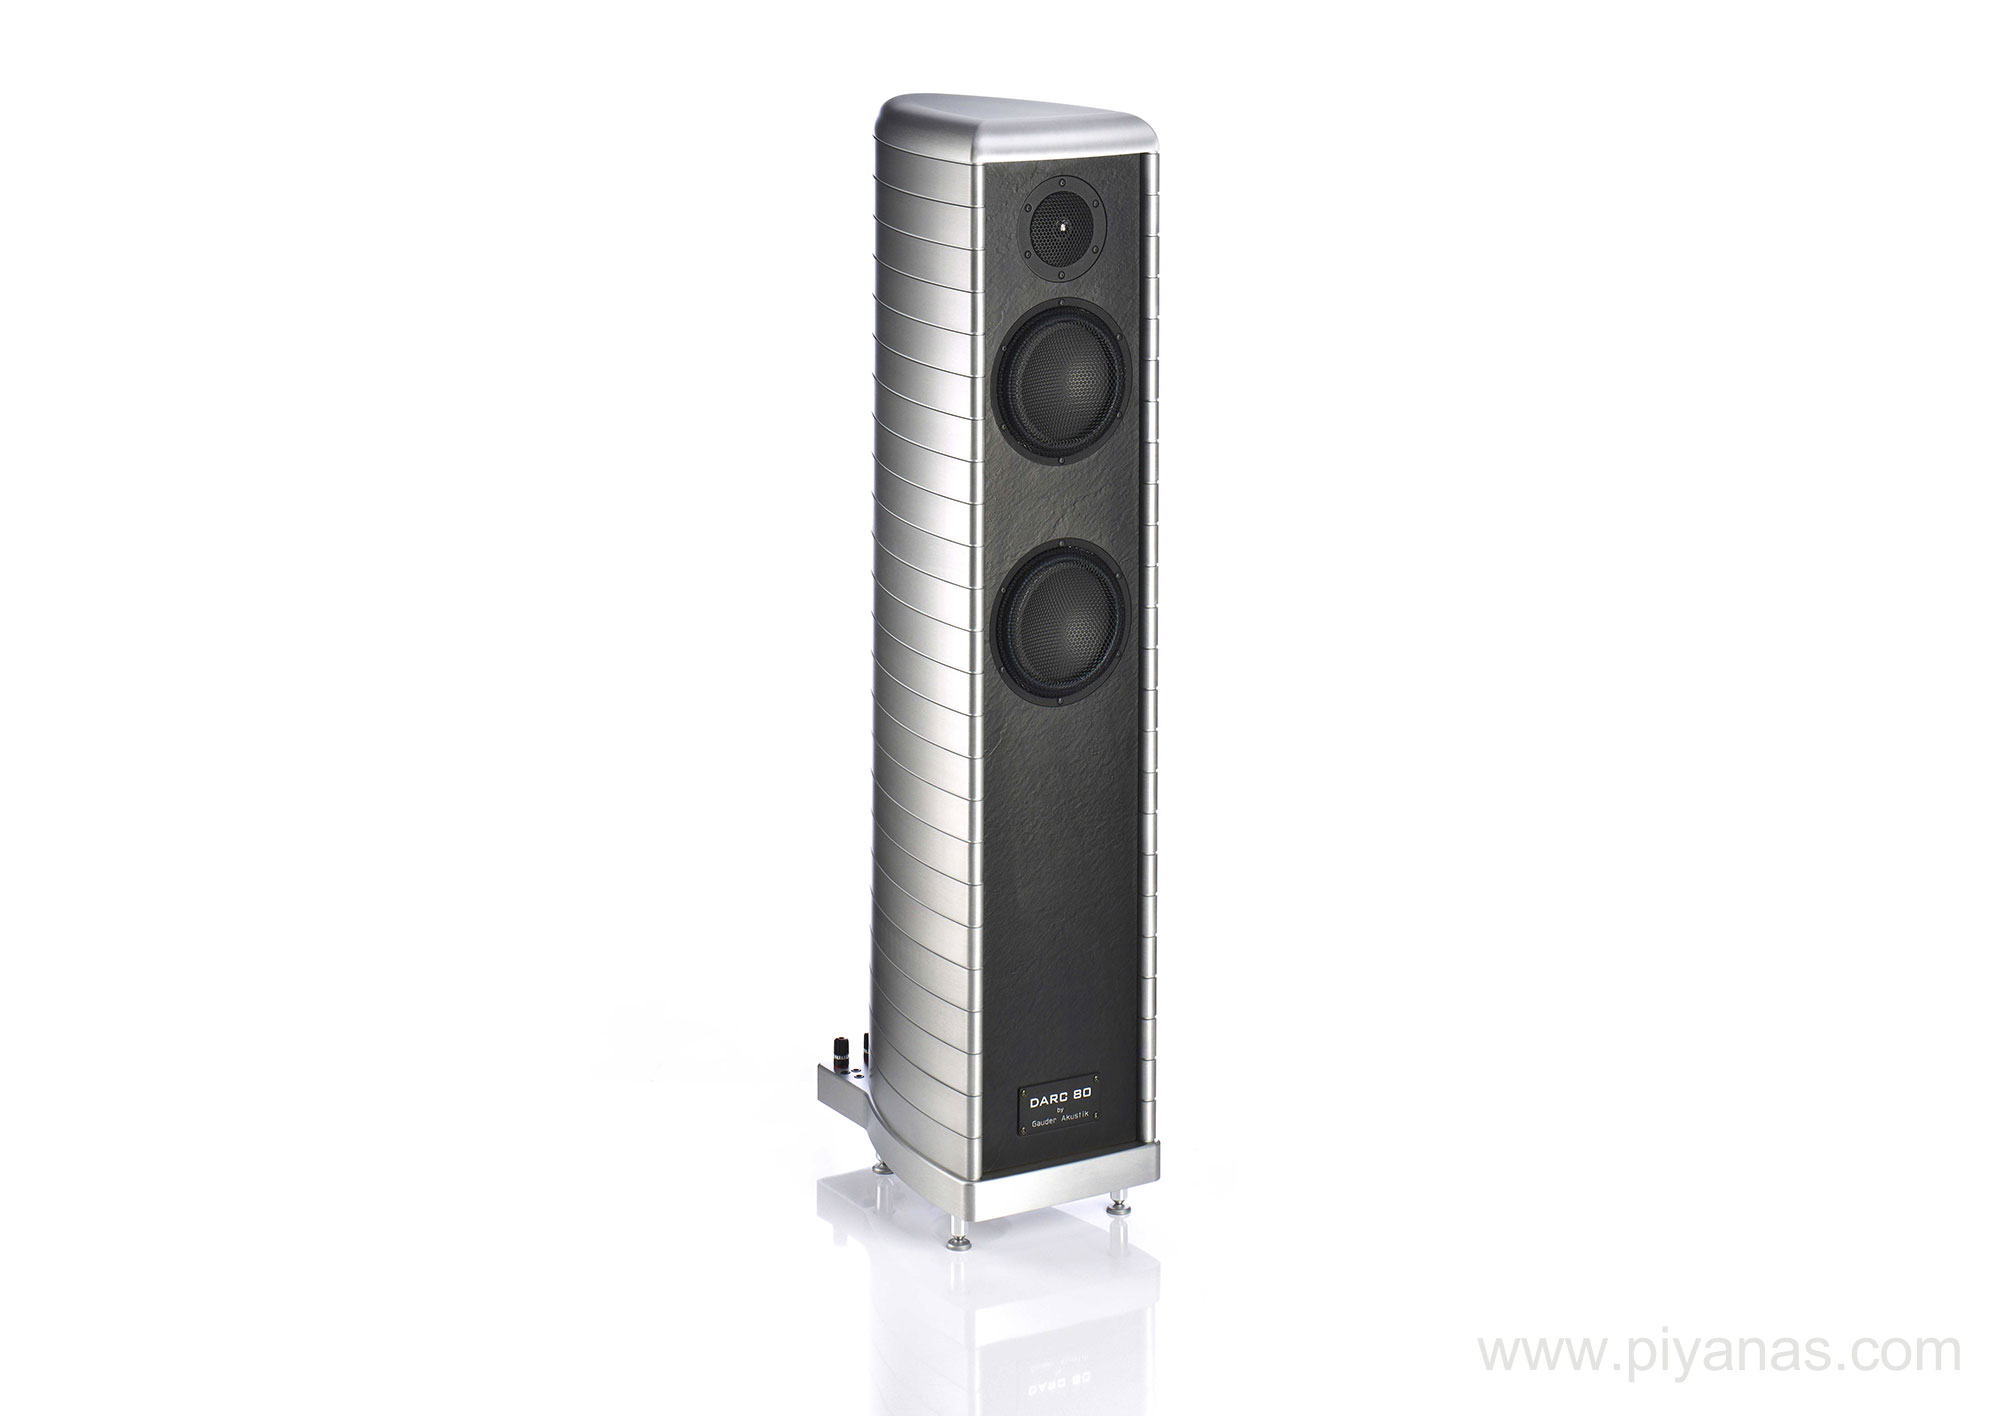 Darc 80 Diamond Tweeter